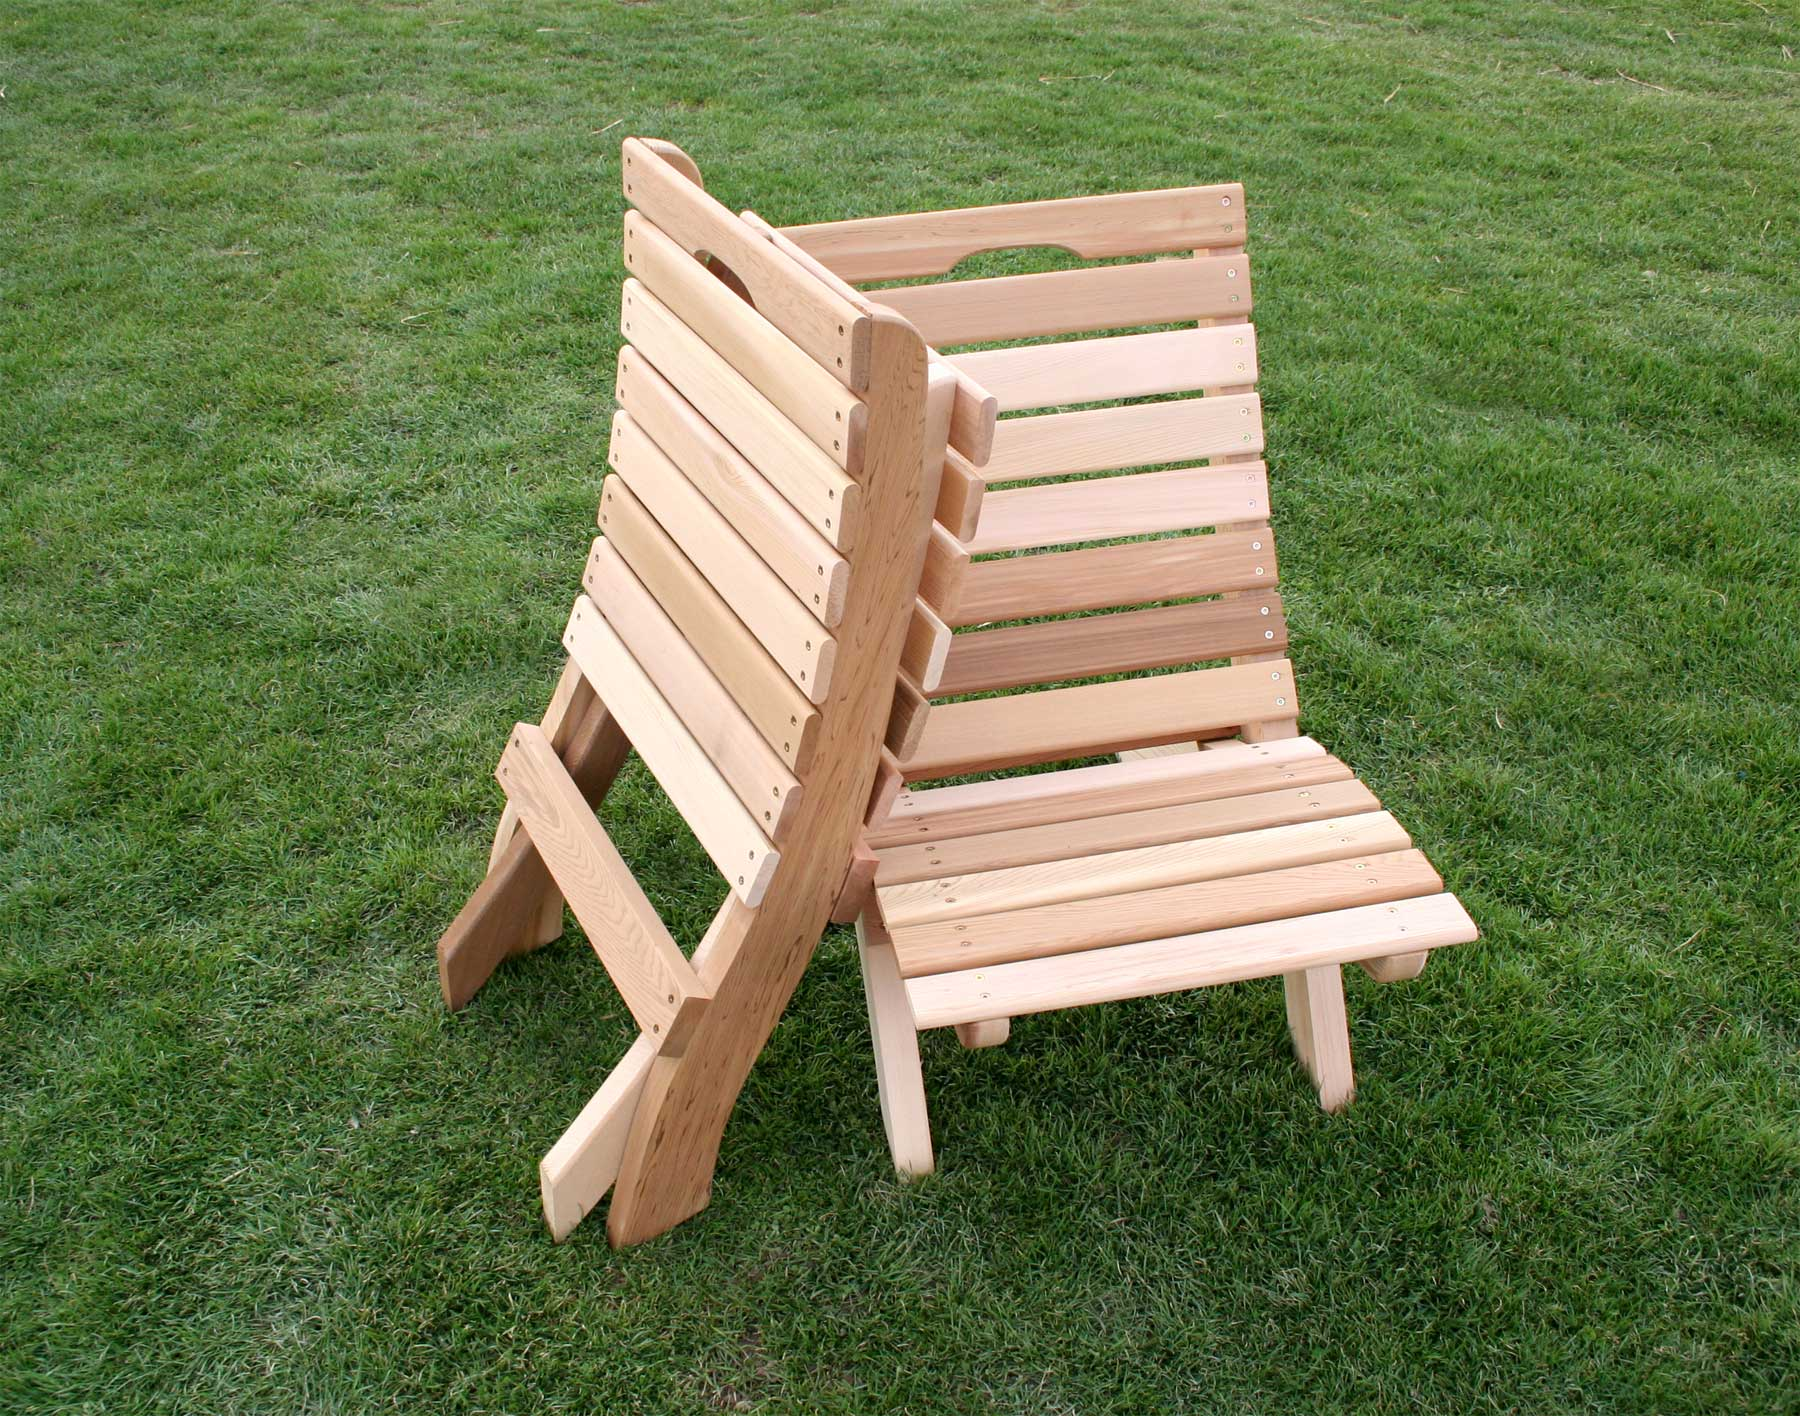 Genial Red Cedar Folding Chairs Shown Unstained